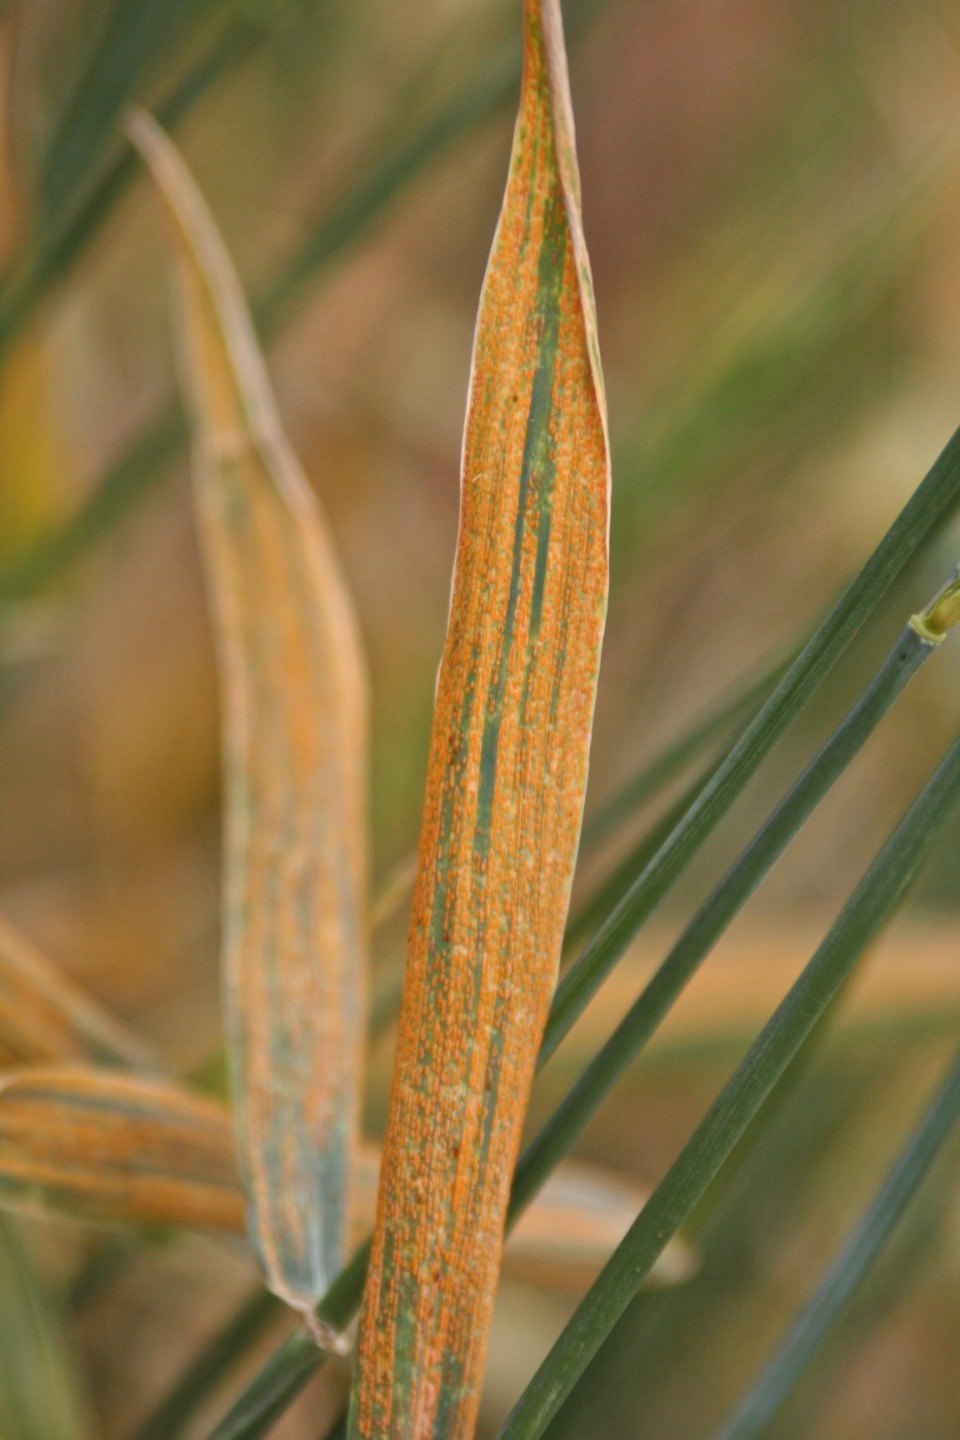 Wheat stripe rust